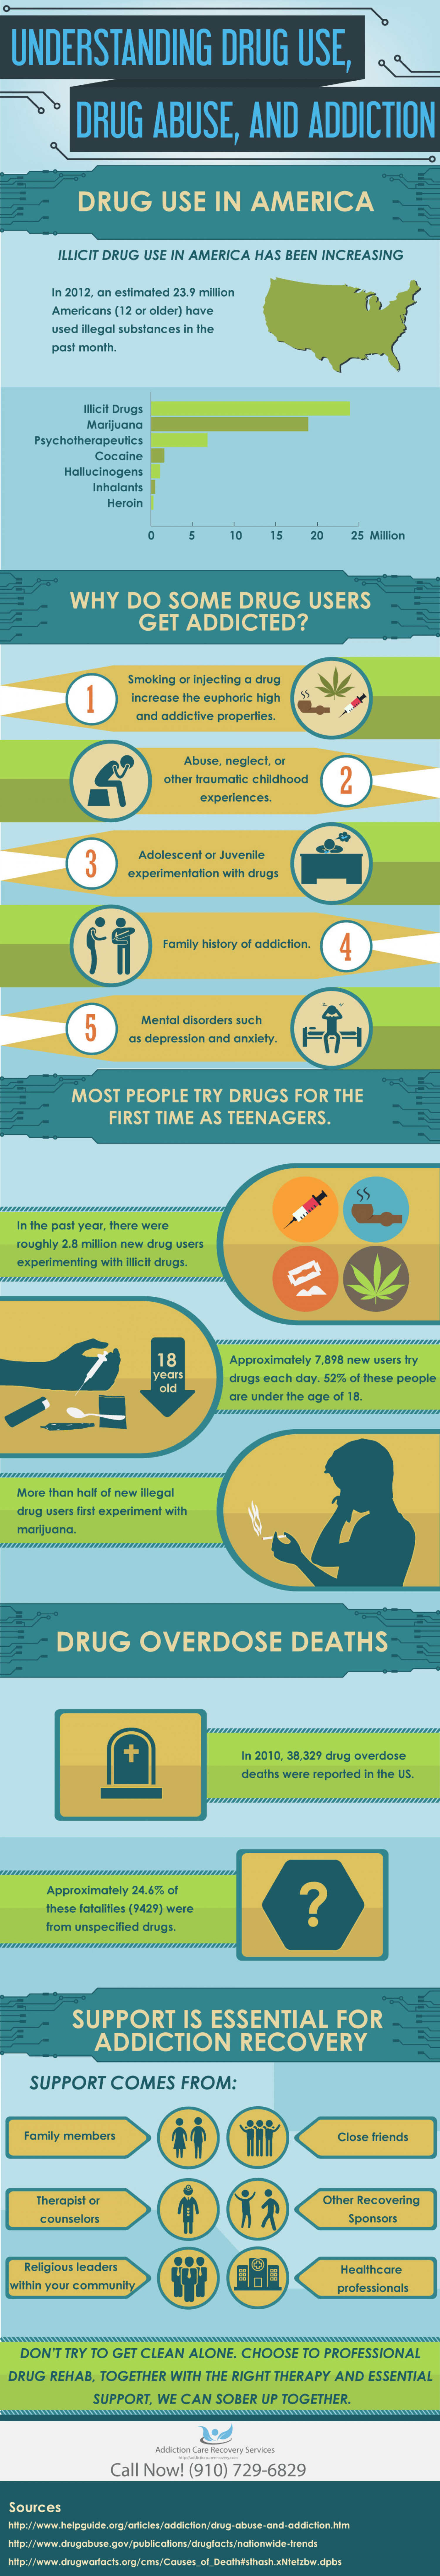 Understanding Drug Use, Drug Abuse and Addiction | Addiction Care Recovery Services		 Infographic